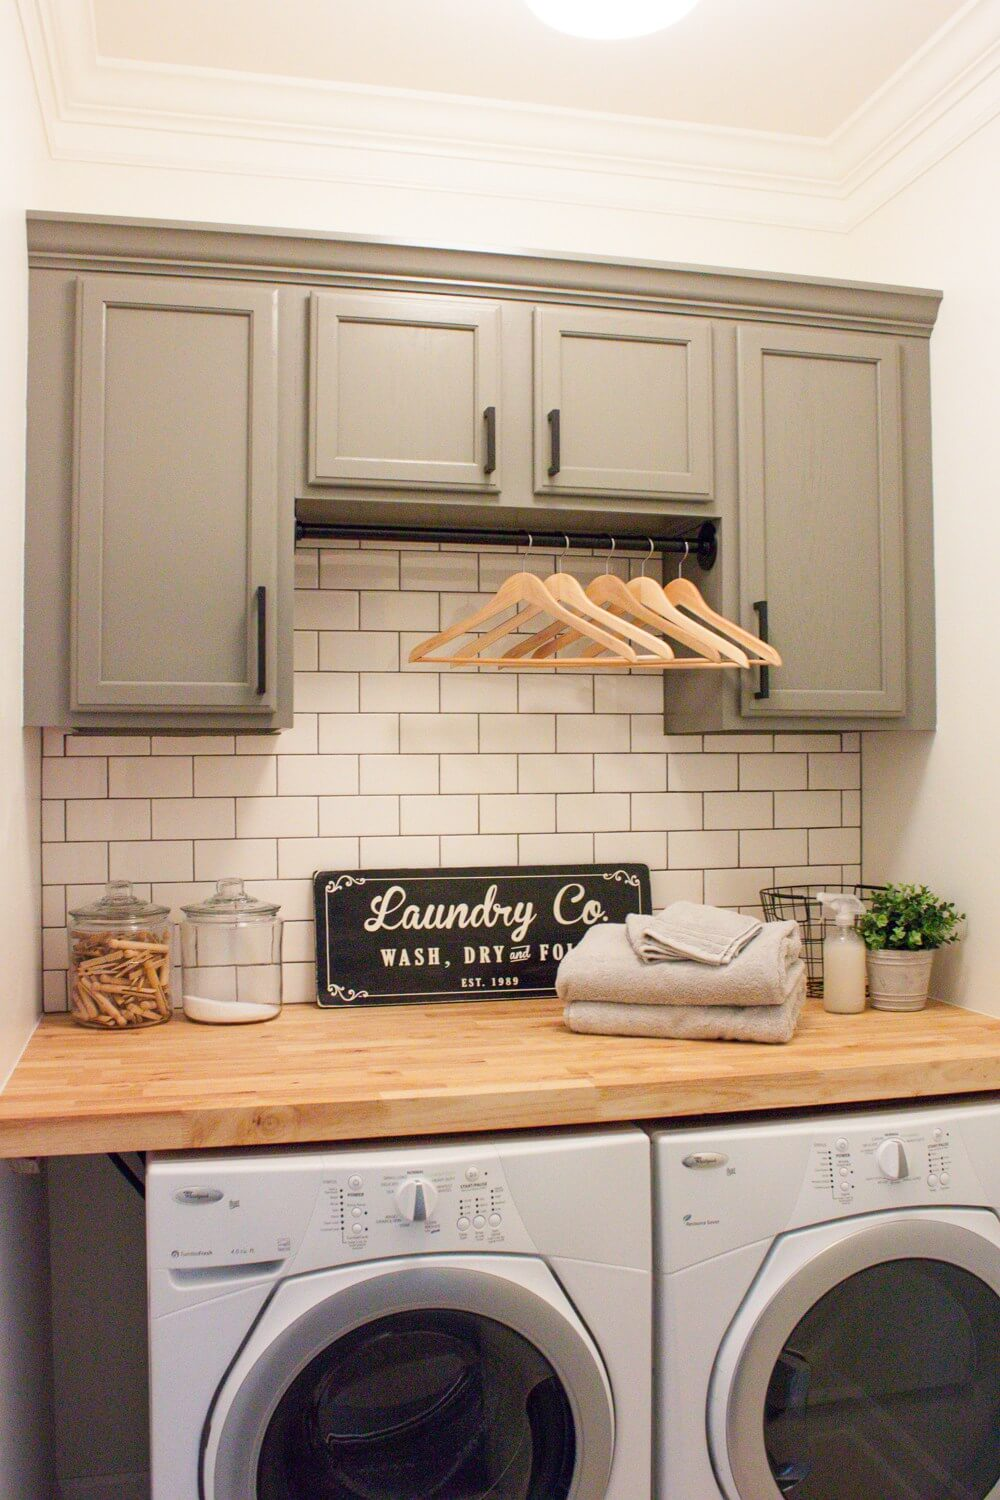 28 Best Small Laundry Room Design Ideas for 2018 Laundry In Kitchen Ideas on laundry in bathroom, laundry closet ideas, full basement ideas, pantry ideas, laundry wash and dry, laundry shed ideas, laundry organizer, laundry in cabinets, laundry and bathroom design ideas, laundry in home, laundry area ideas, great room ideas, laundry chute size, laundry office ideas, laundry basement ideas, laundry room, laundry in bedroom, laundry photography, laundry remodel, laundry steps,